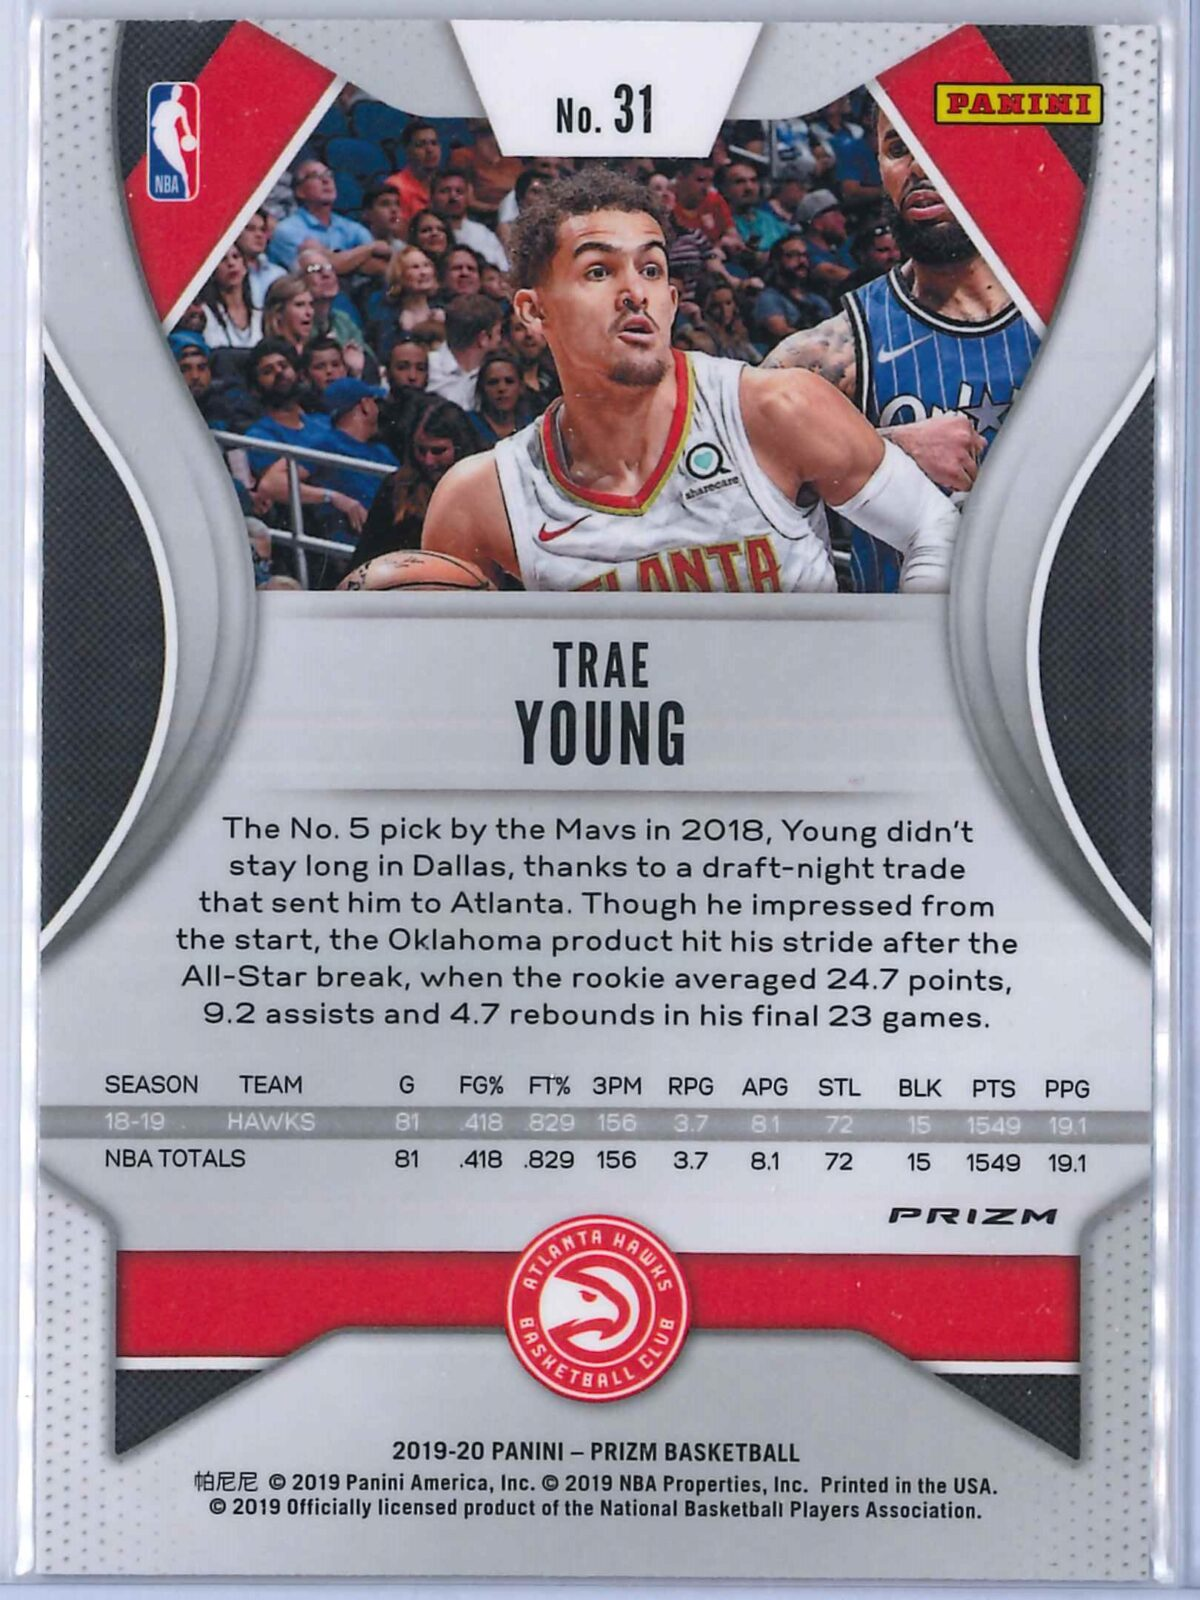 Trae Young (1) Panini Prizm 2019-20 Base 2nd Year Red White Blue